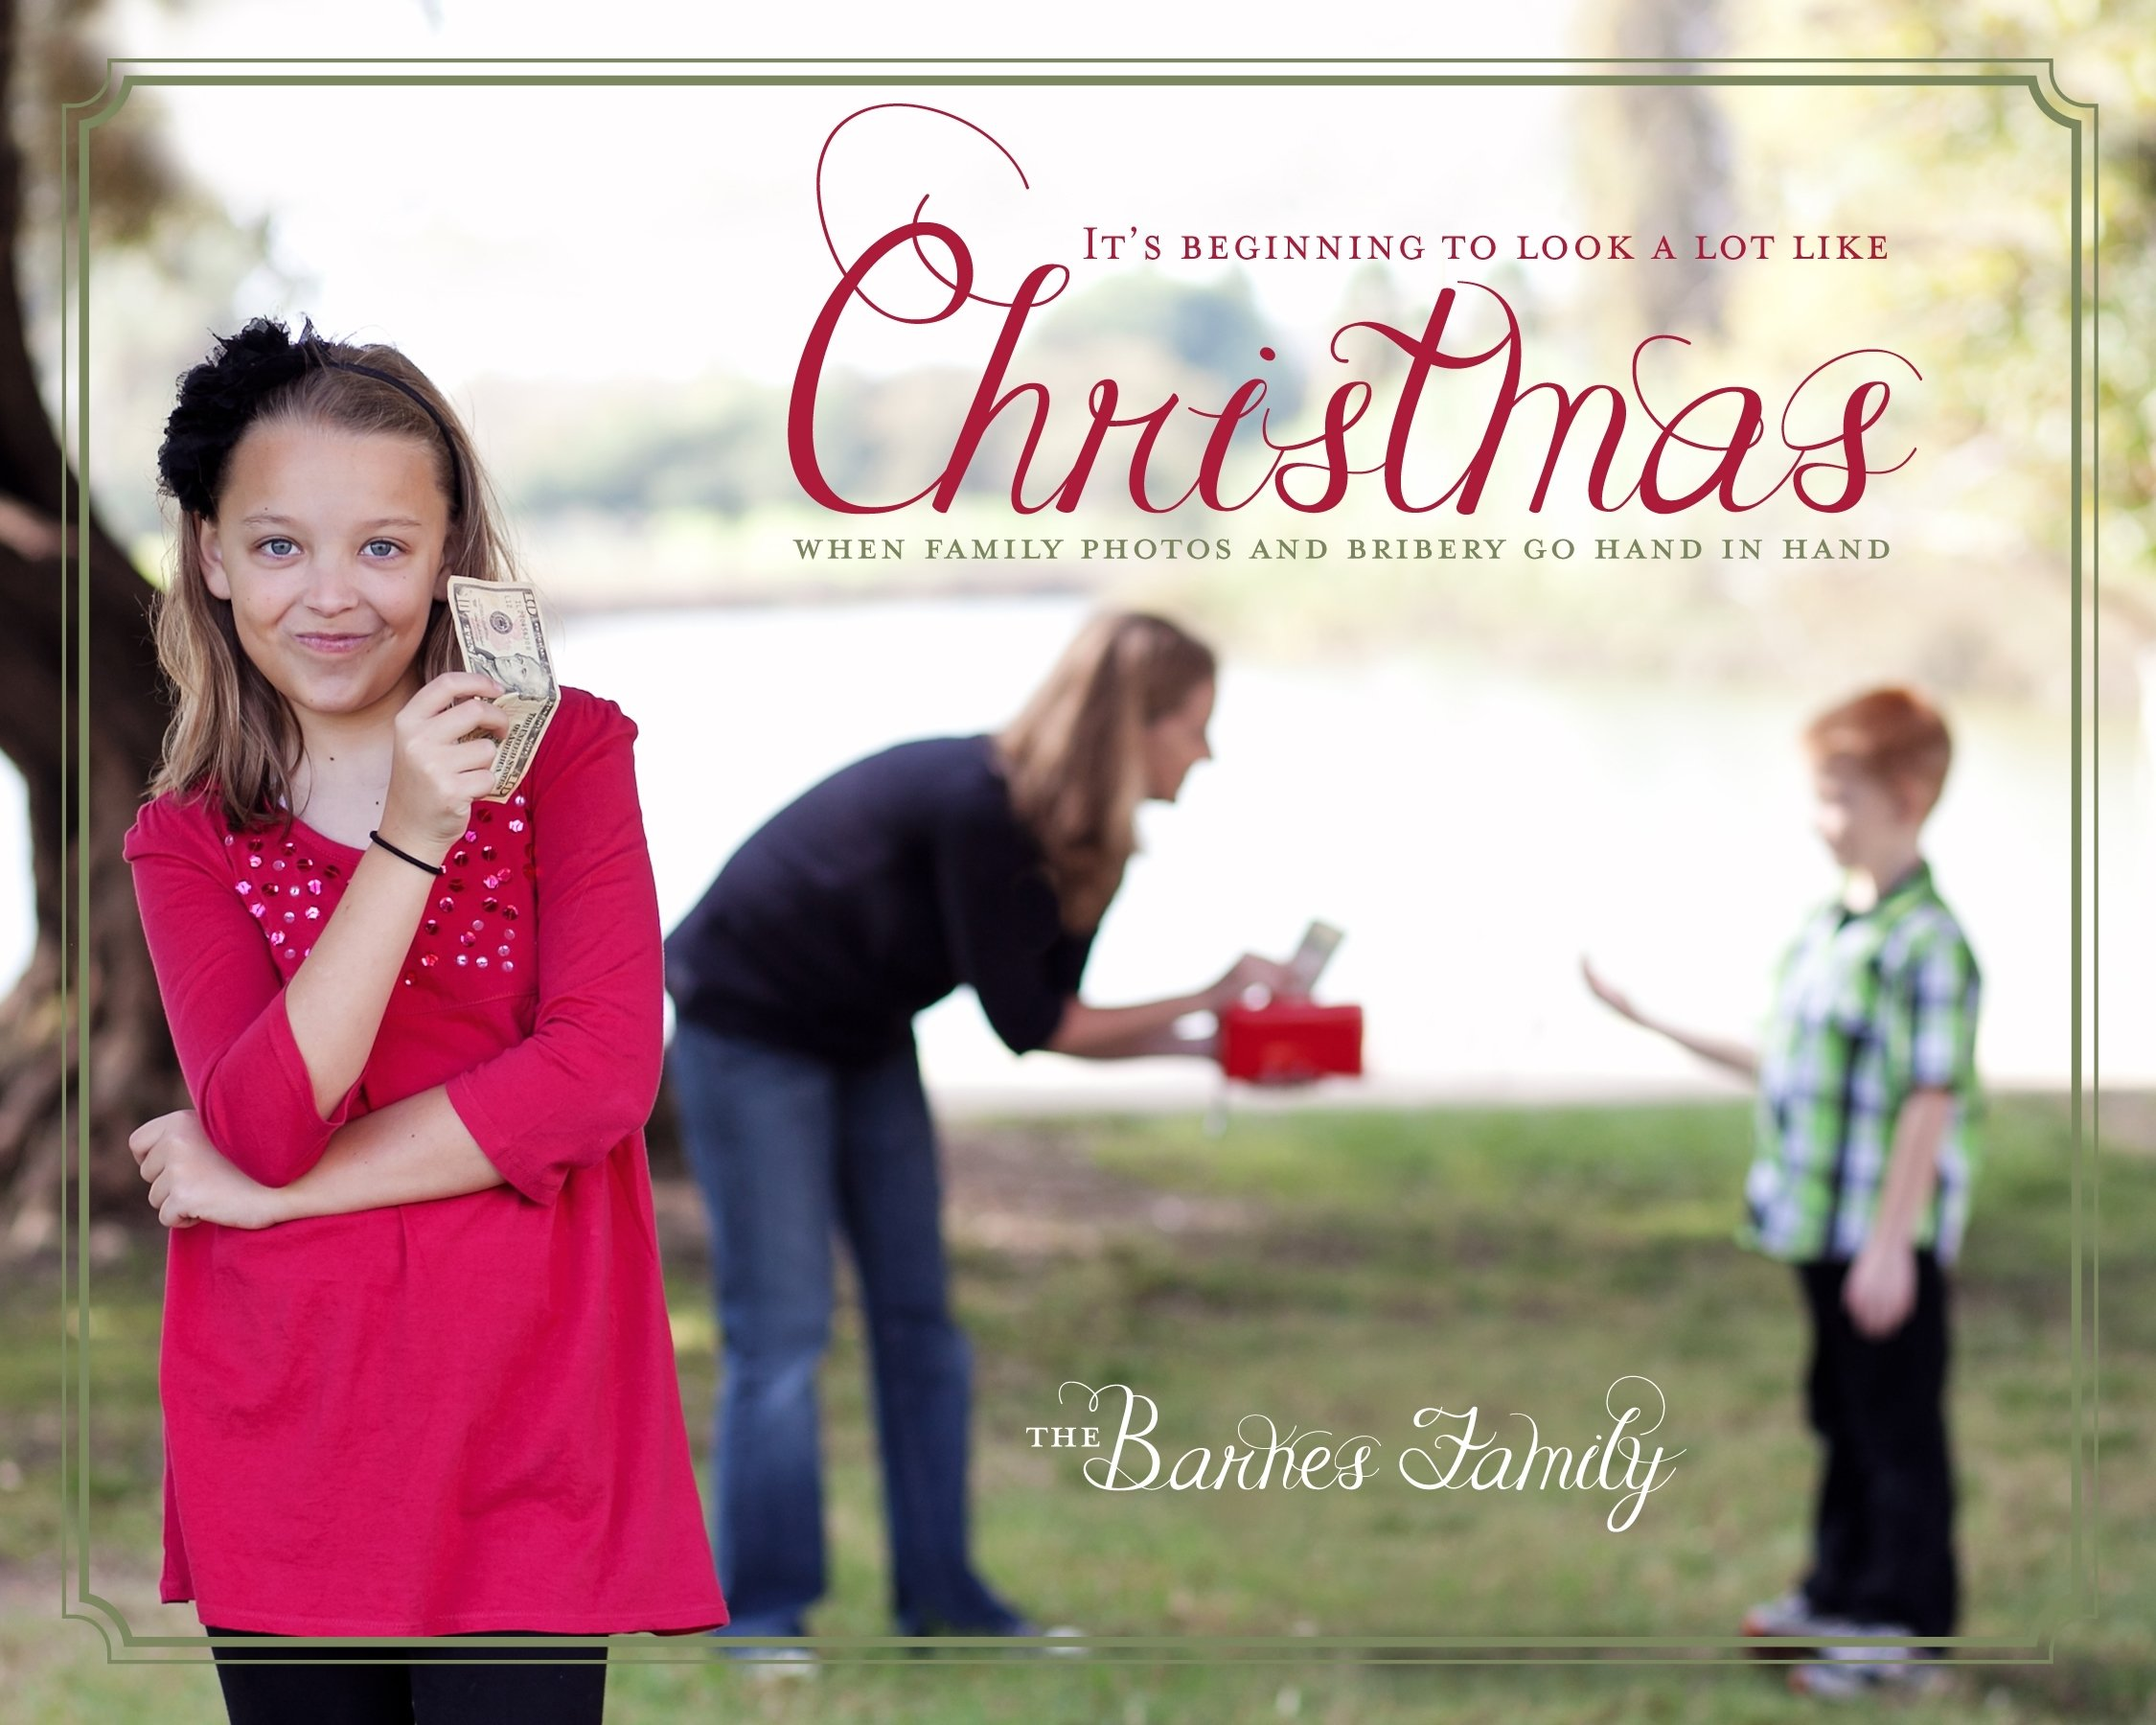 10 Gorgeous Funny Christmas Card Ideas Kids funny christmas card photo ideas for kids merry christmas and